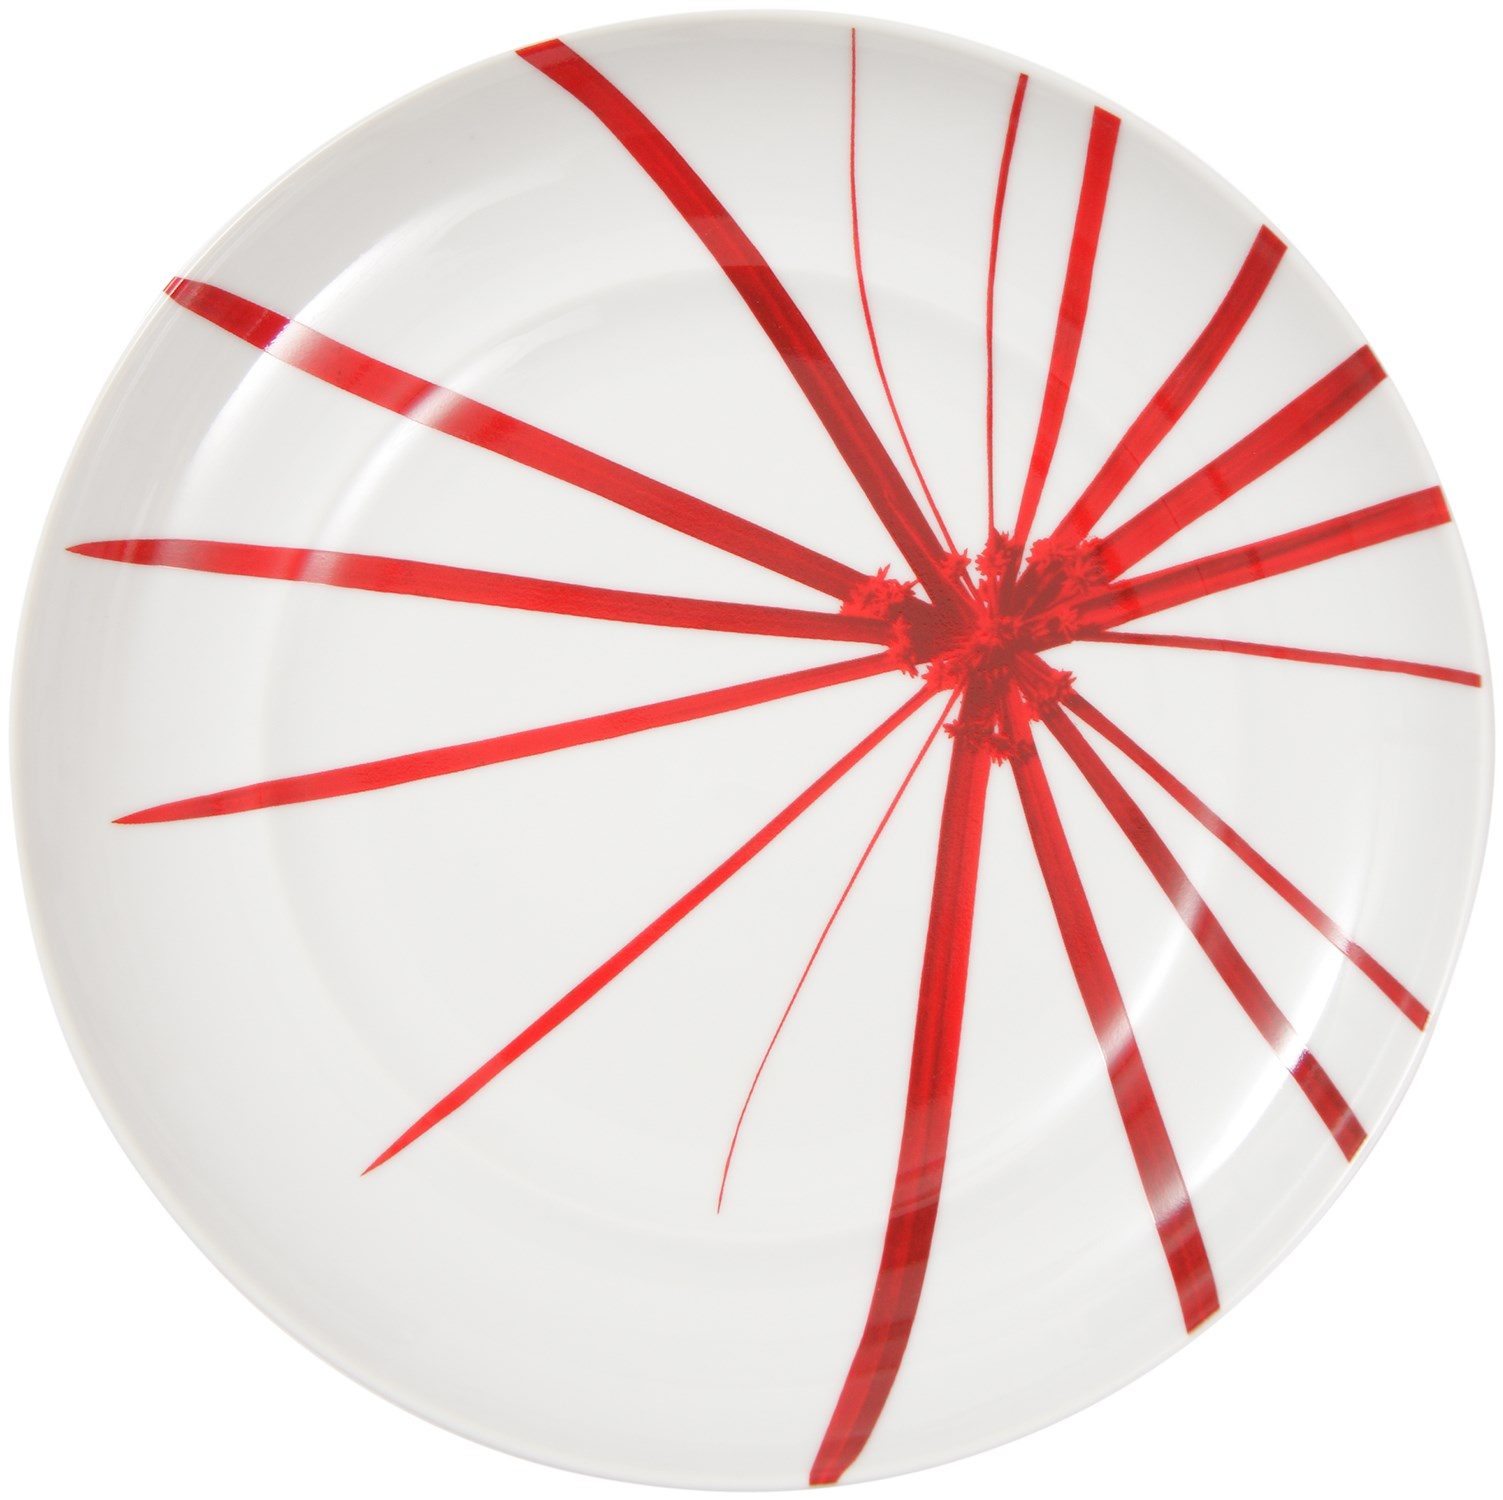 click to zoom. SPAL Fall set of 6 fruit plates  sc 1 st  Inexistência & SPAL Tableware fall